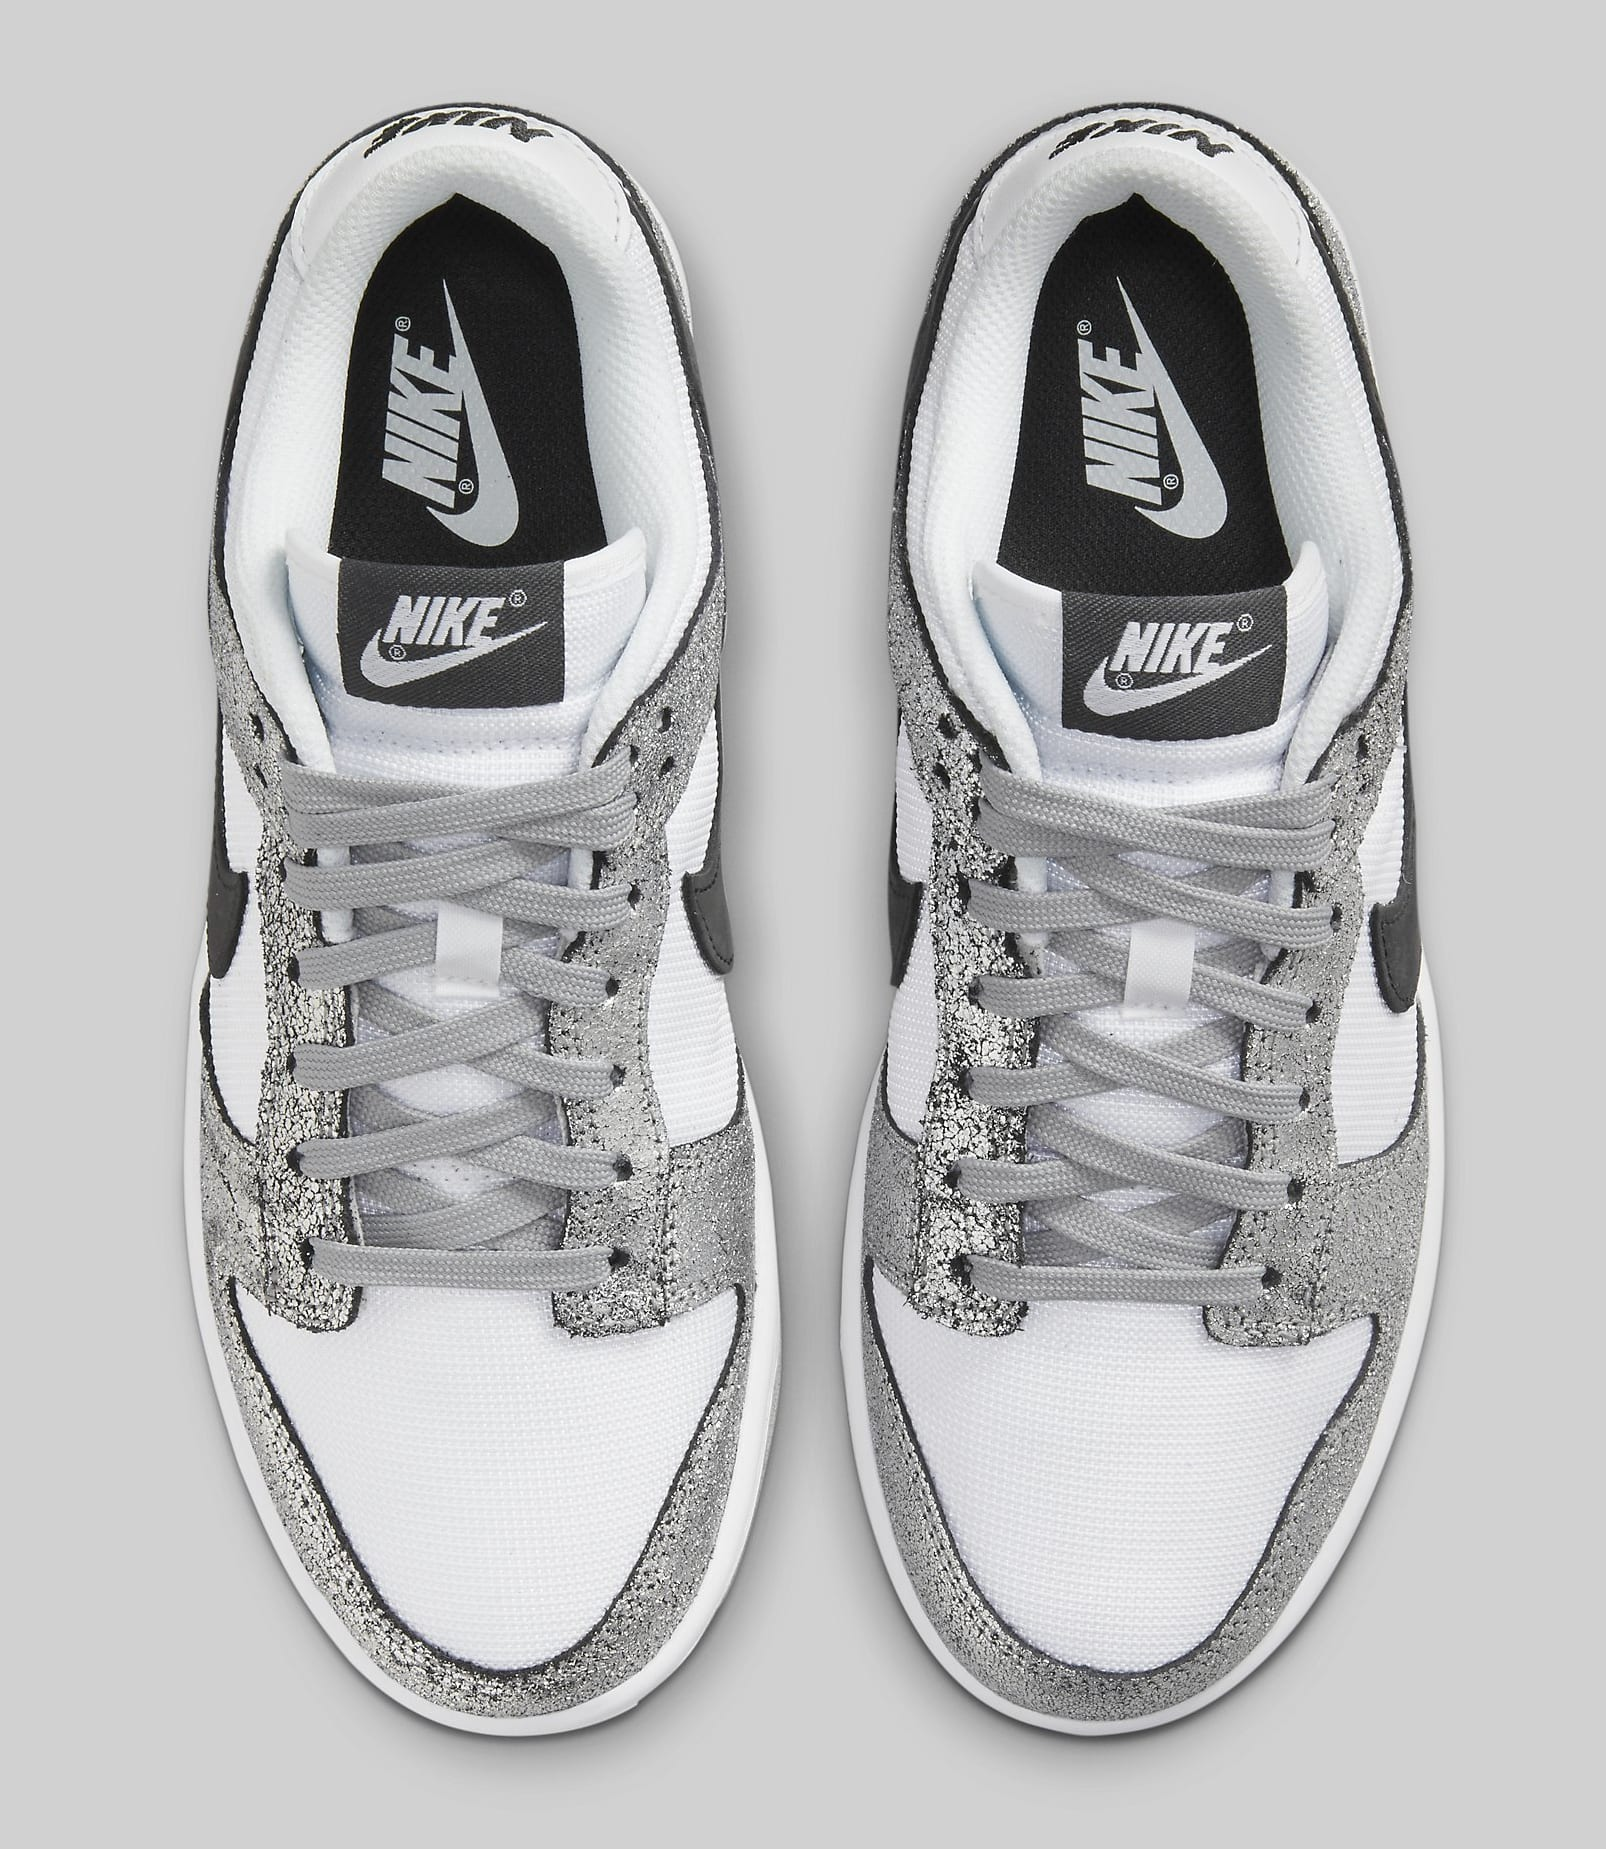 Nike Dunk Low 'Shimmer' DO5882-001 Top